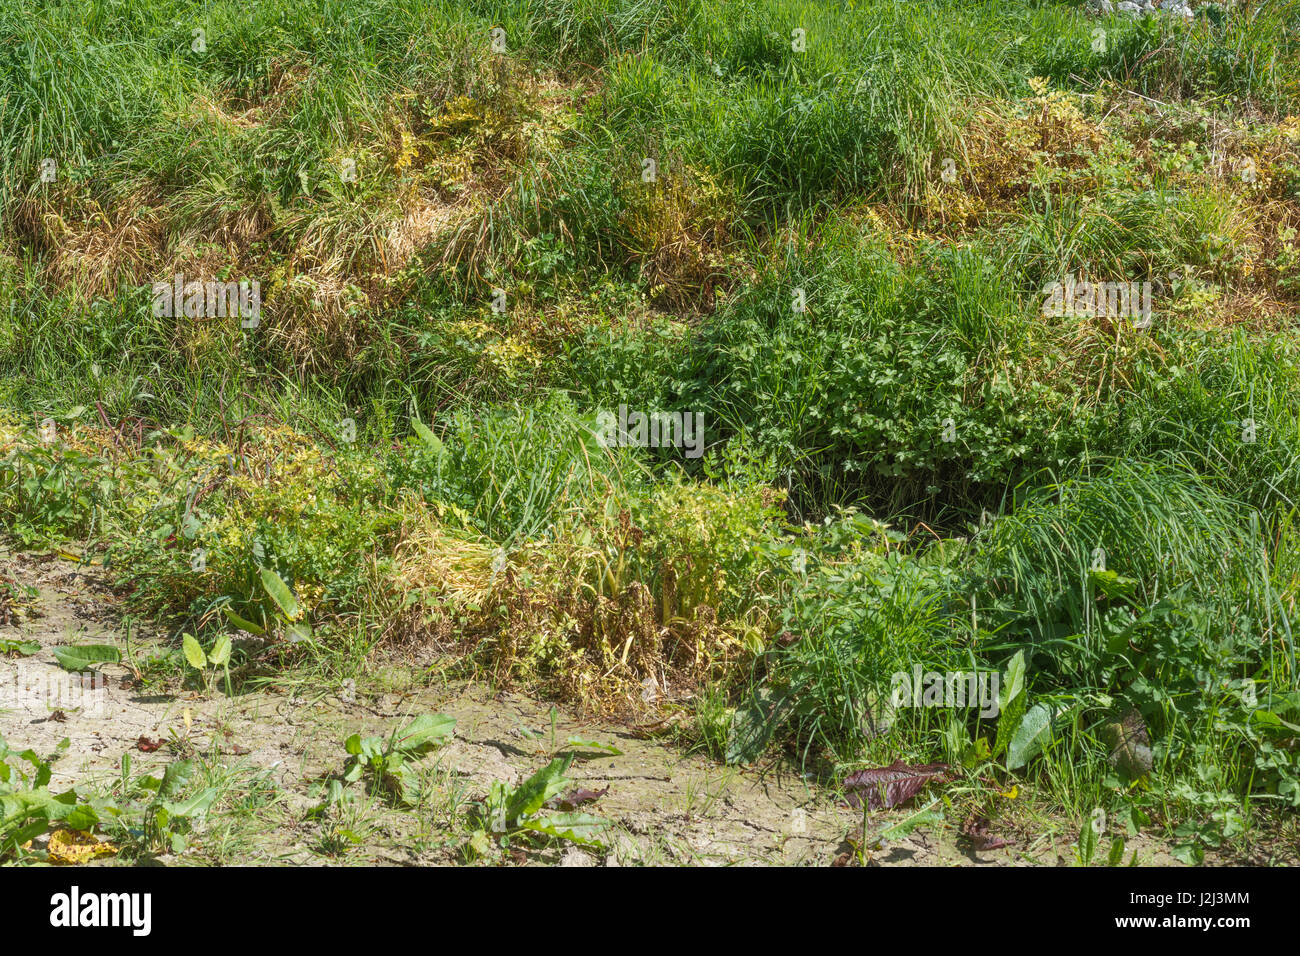 Noxious weed control by herbicide use - yellowed leaves of poisoned Hemlock Water-Dropwort / Oenanthe crocata beside Stock Photo